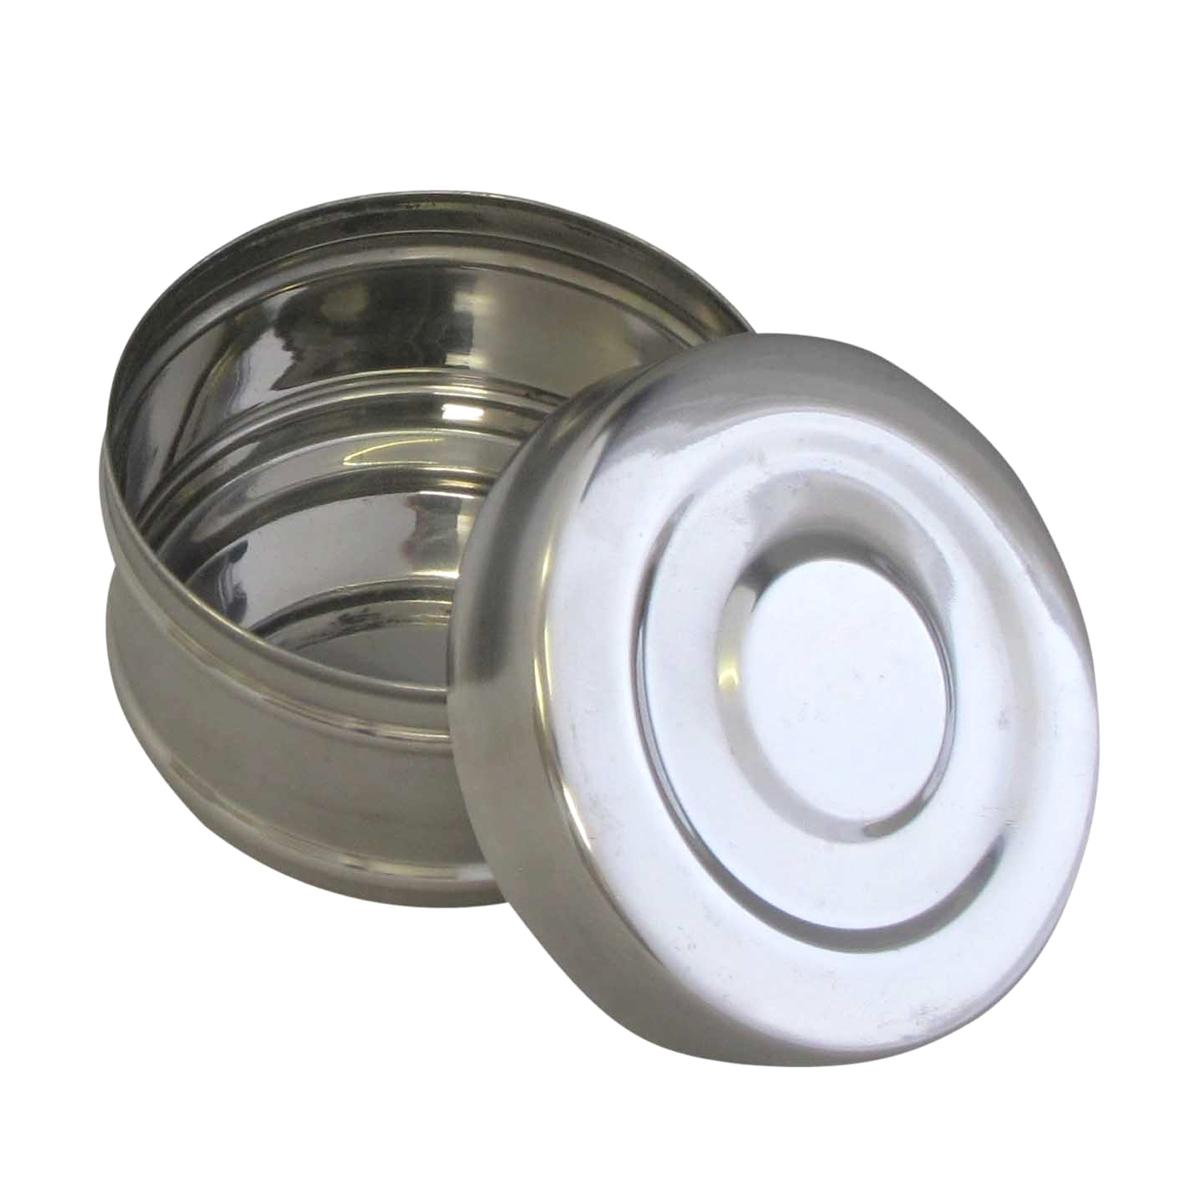 Stainless Steel Tiffin 3 4 Or 2 Section 10cm Indian Lunch